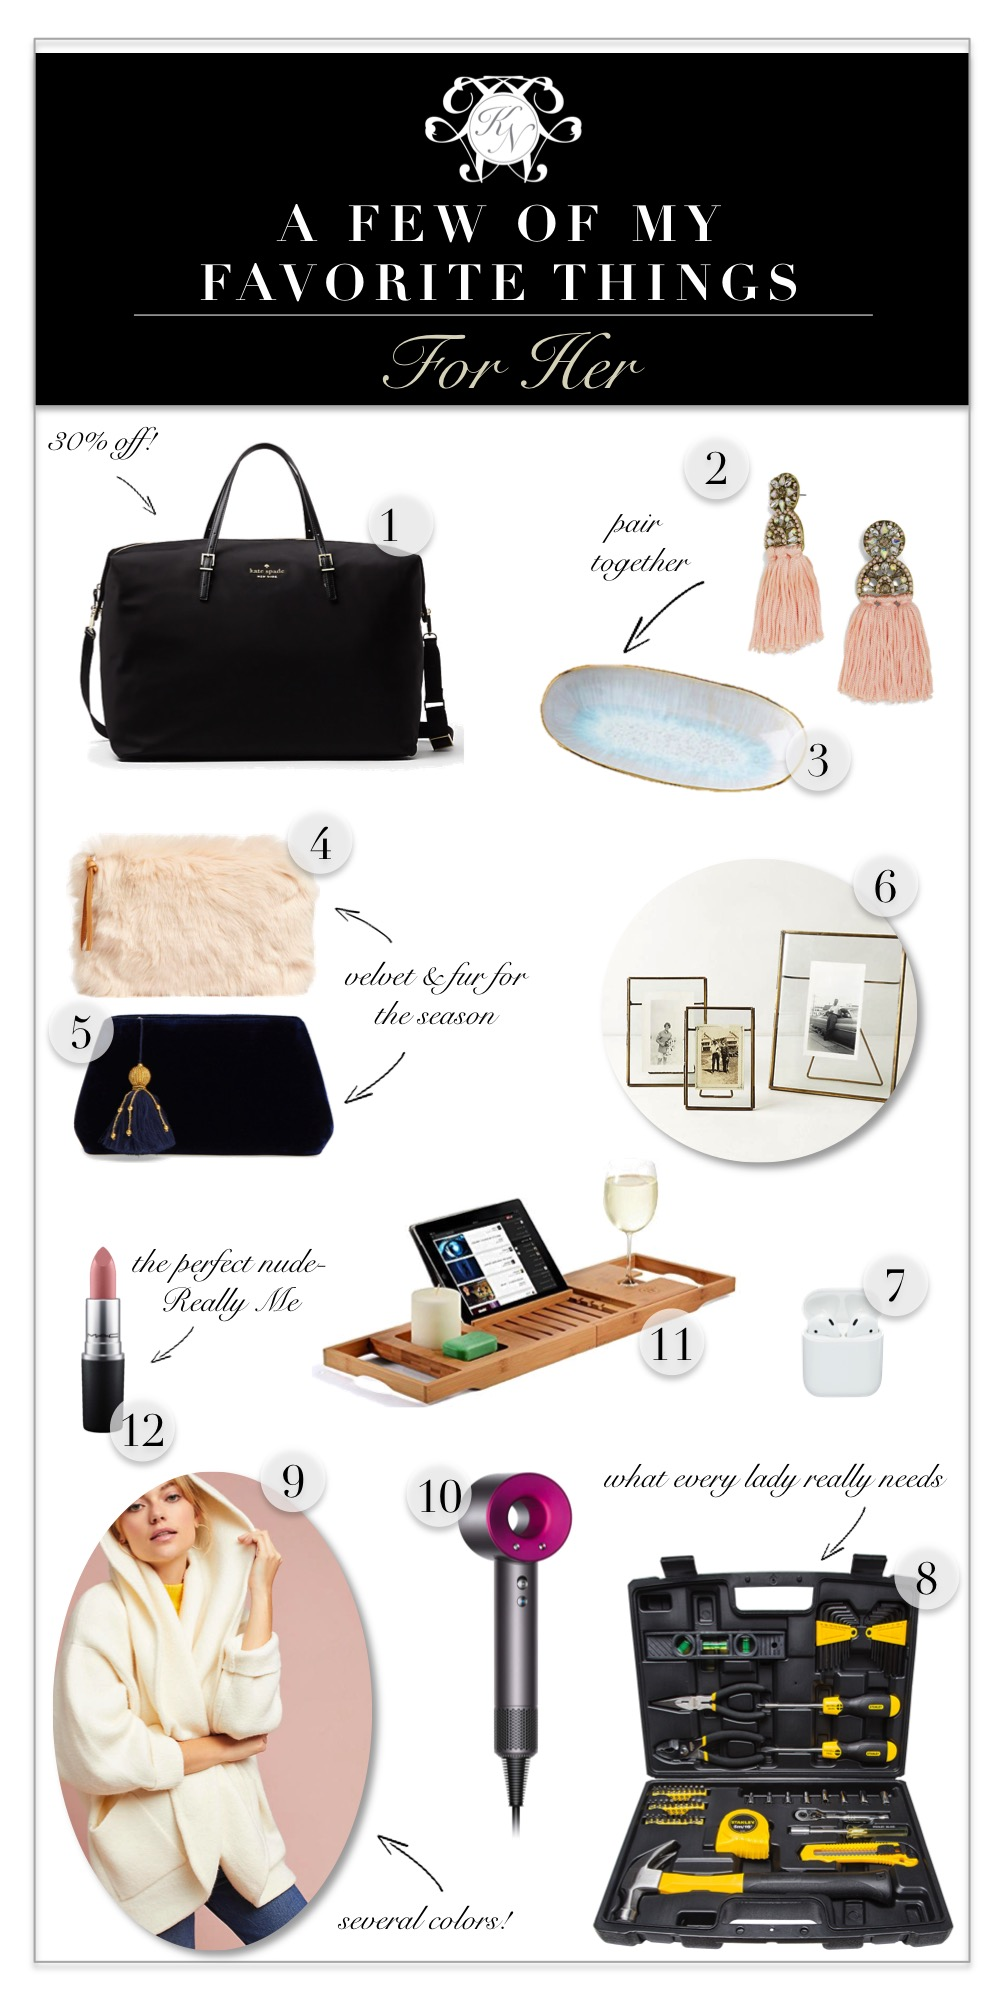 A Few of My Favorite Things: A Gift Guide for Her - Kelley Nan